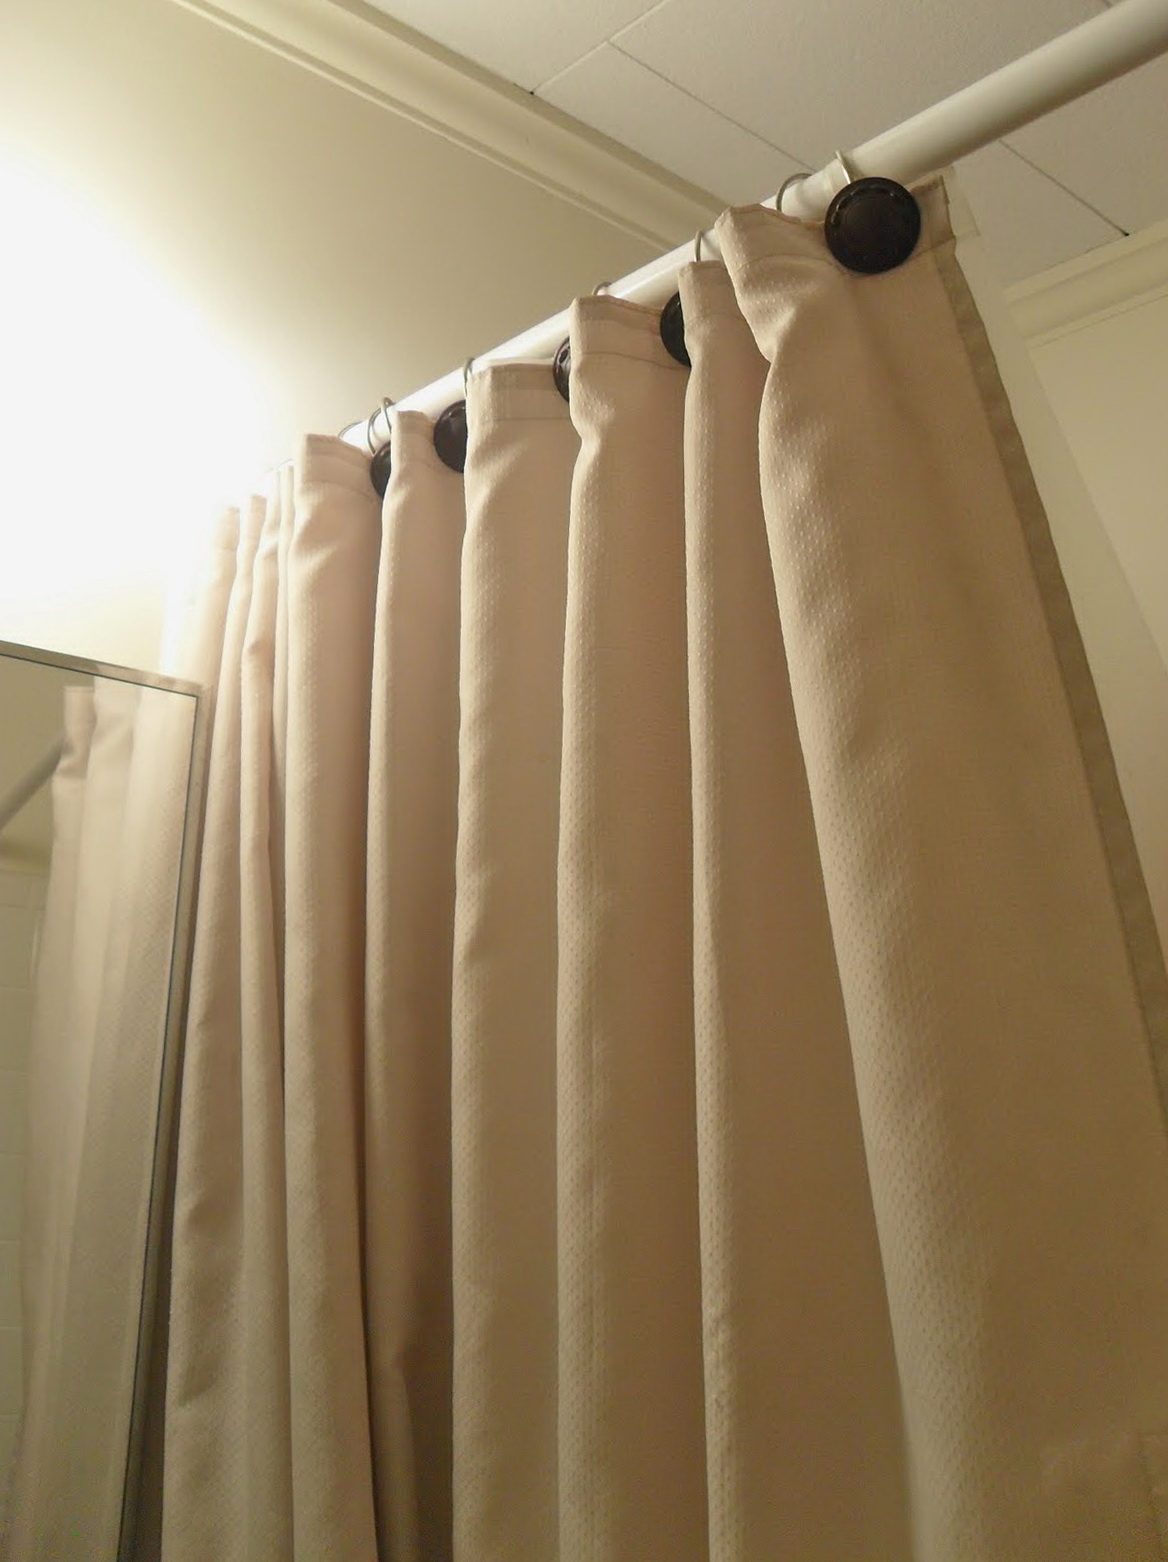 Shower Curtain Tension Rod Target